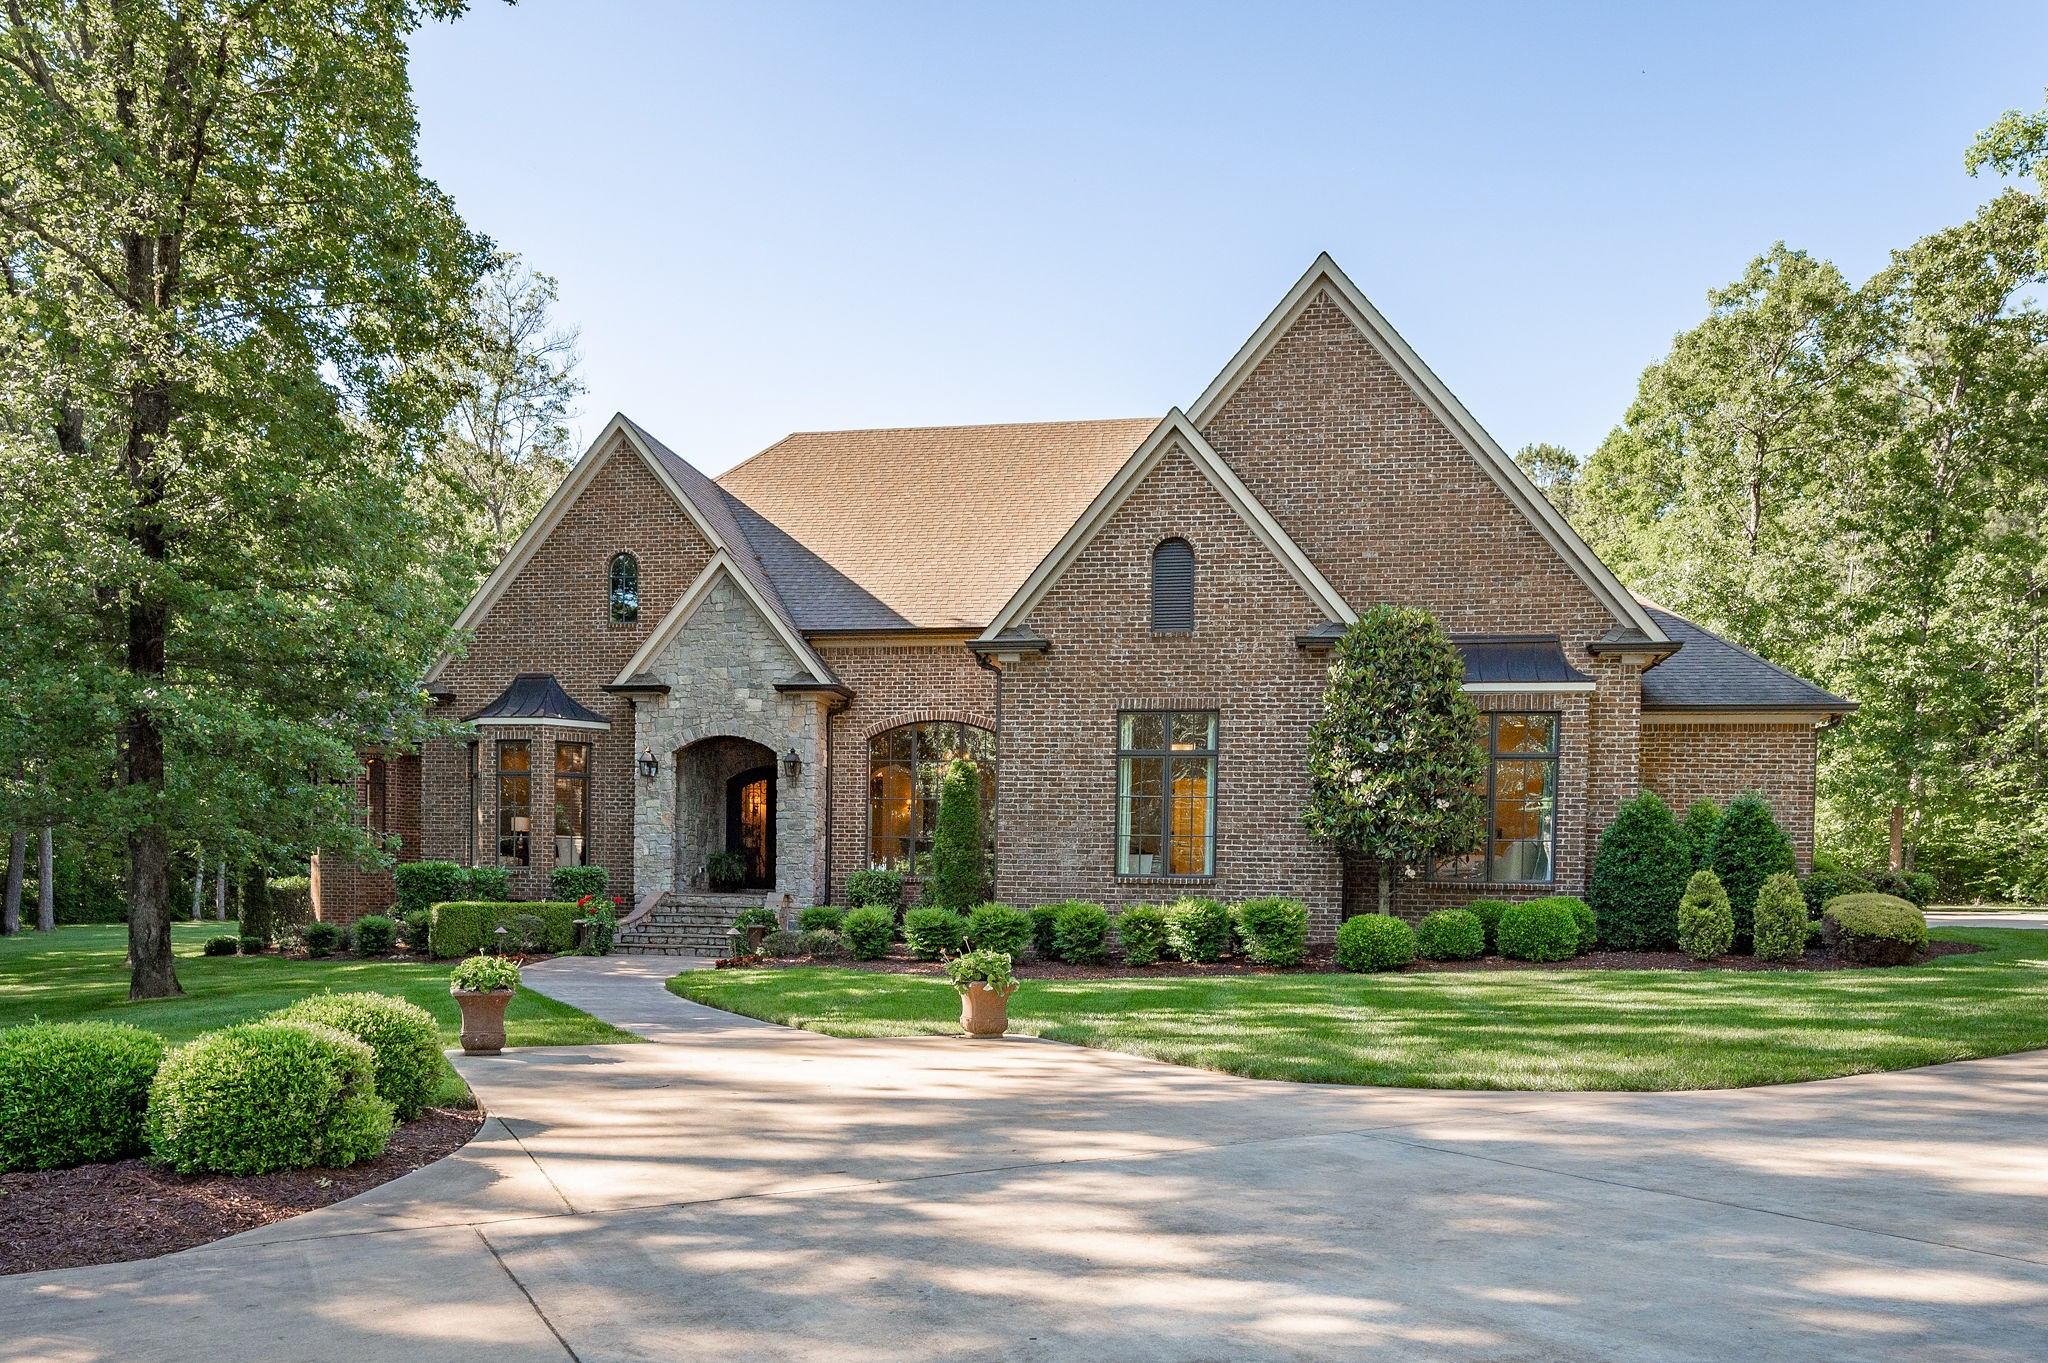 652 Waterford Dr Property Photo - Manchester, TN real estate listing